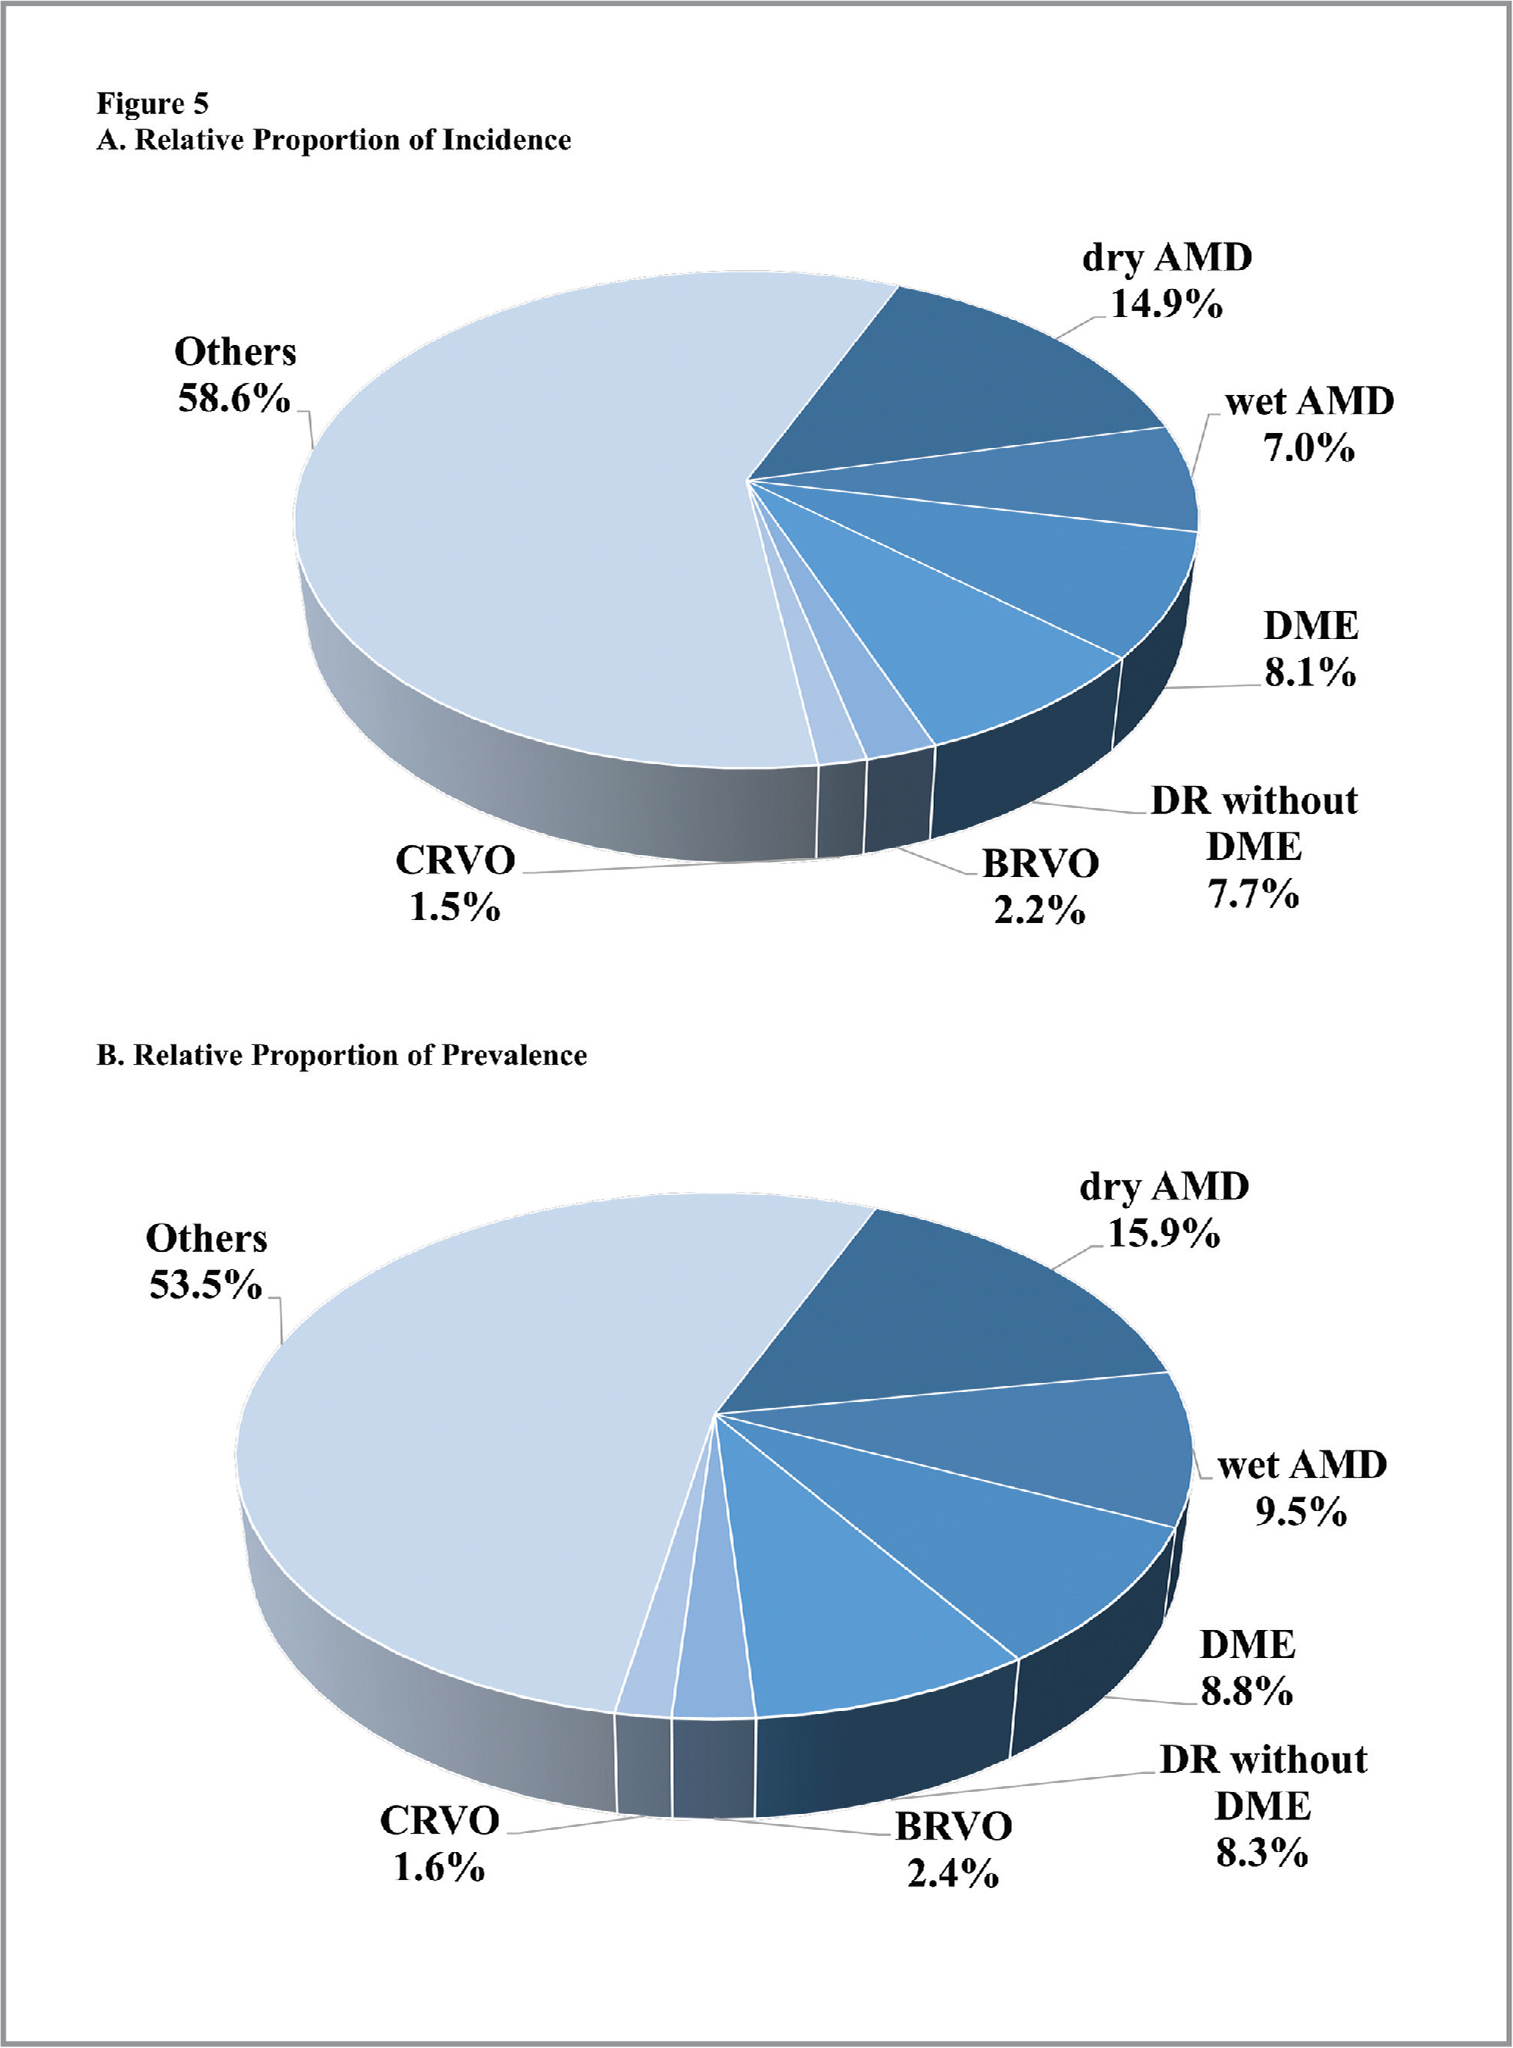 (A) Total incidence for each of the retinal diseases for the entire 6-year study period as a relative proportion of the total number of new eyes examined by a retina specialist during the study period. (B) Total prevalence for each of the retinal diseases for the entire 6-year study period as a relative proportion of the total number of eyes examined by a retina specialist during the study period.